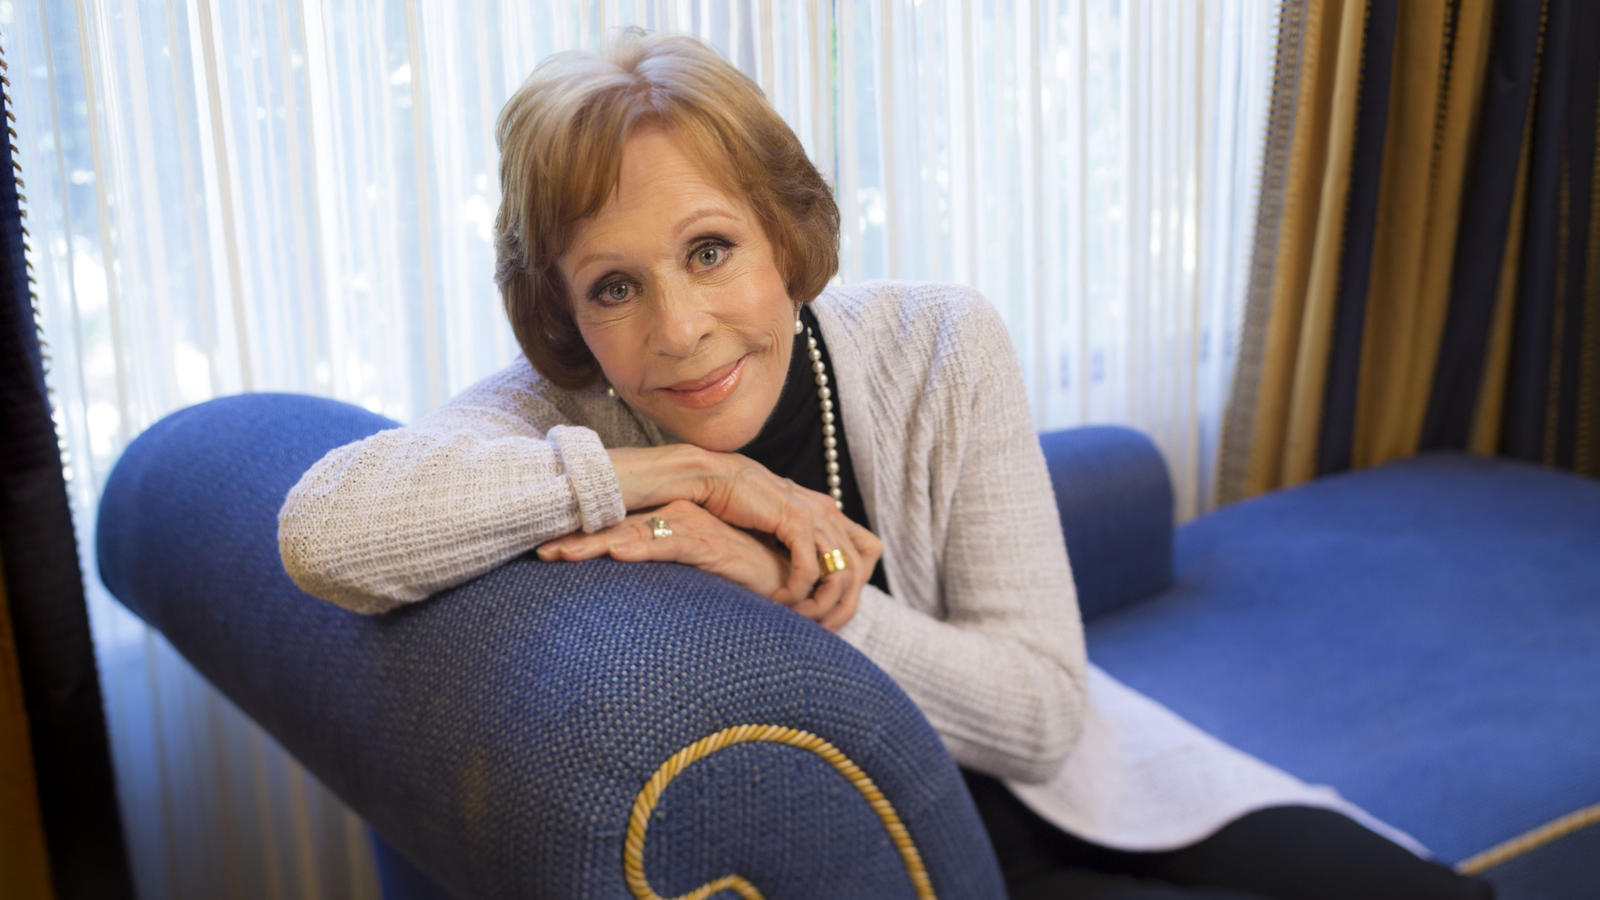 Carol Burnett could return to television in a sitcom executive produced by Amy Poehler and Michael Saltzman. (Ricardo DeAratanha / Los Angeles Times)